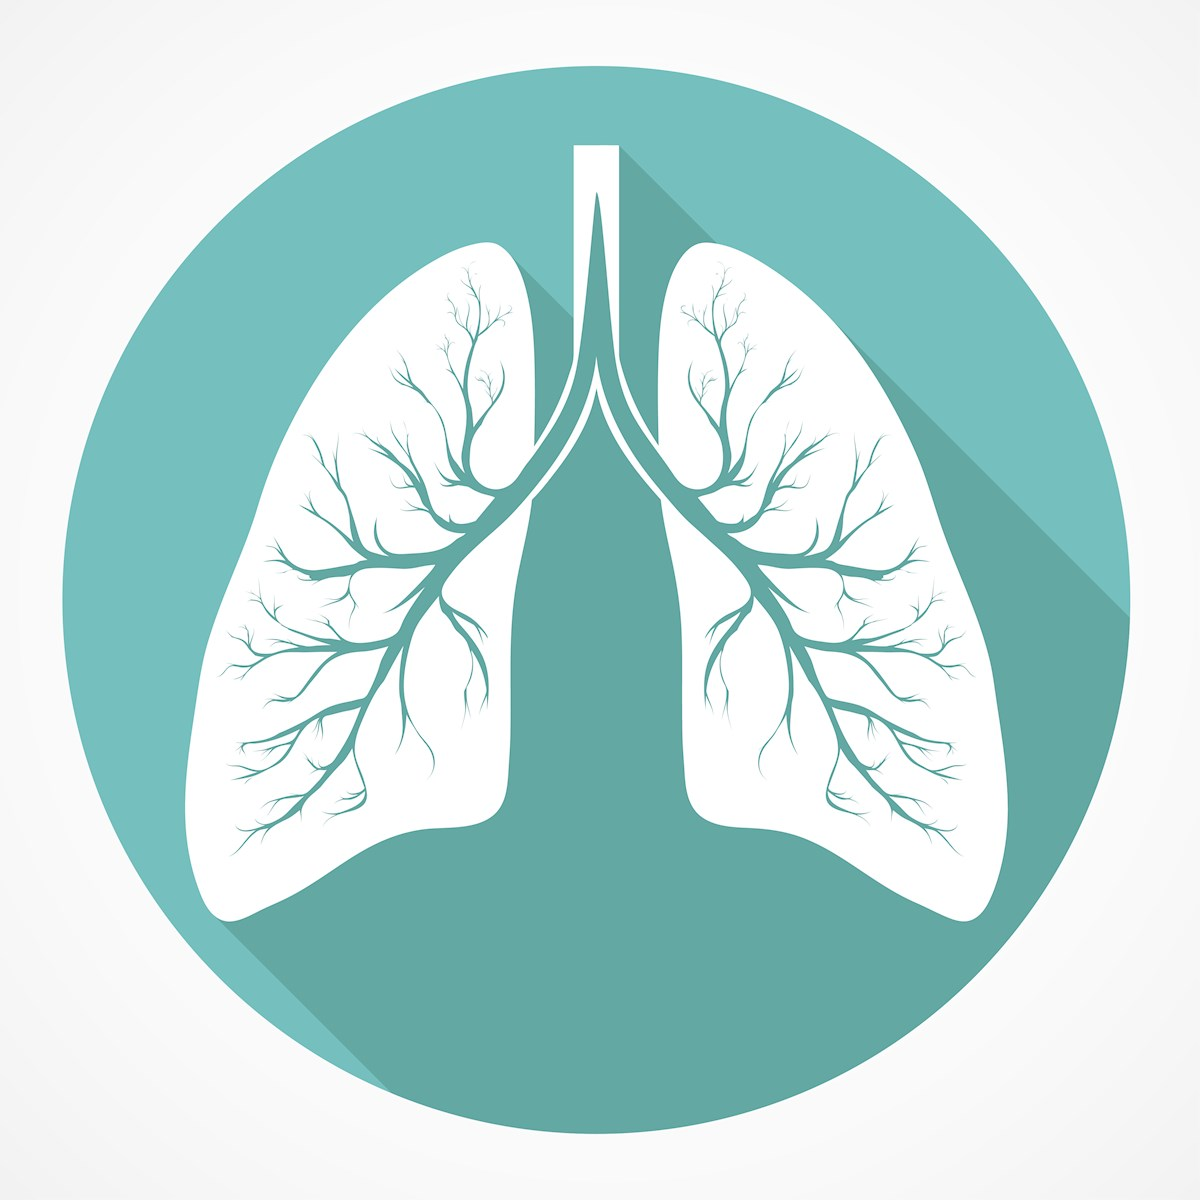 lungs-illus